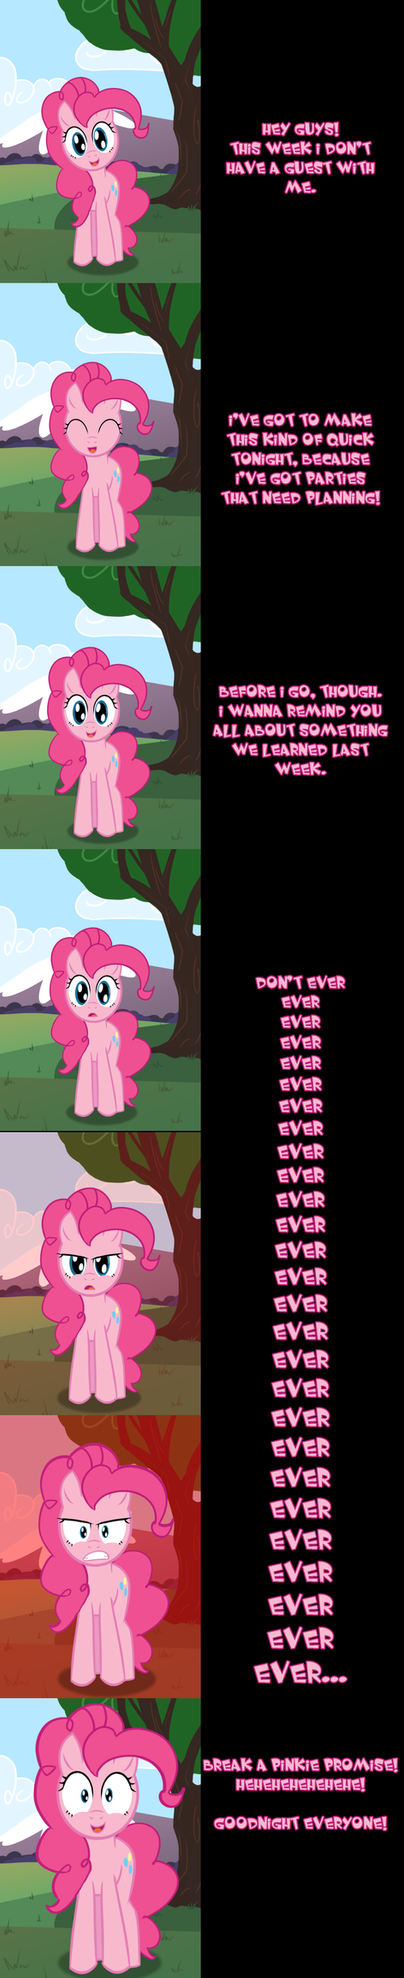 Pinkie Says KEEP YOUR PROMISES by Undead-Niklos